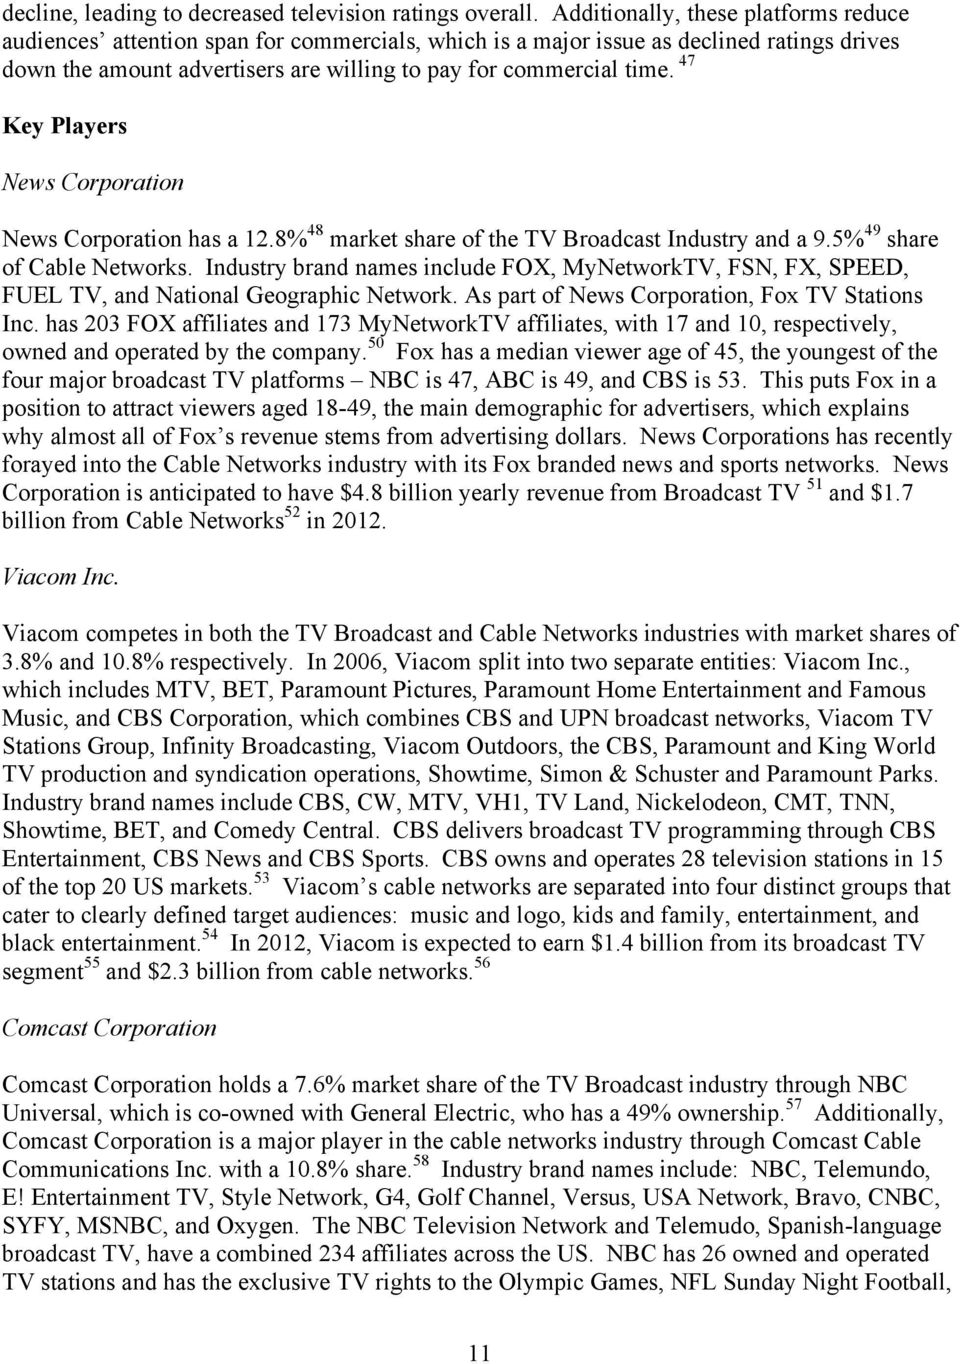 47 Key Players News Corporation News Corporation has a 12.8% 48 market share of the TV Broadcast Industry and a 9.5% 49 share of Cable Networks.